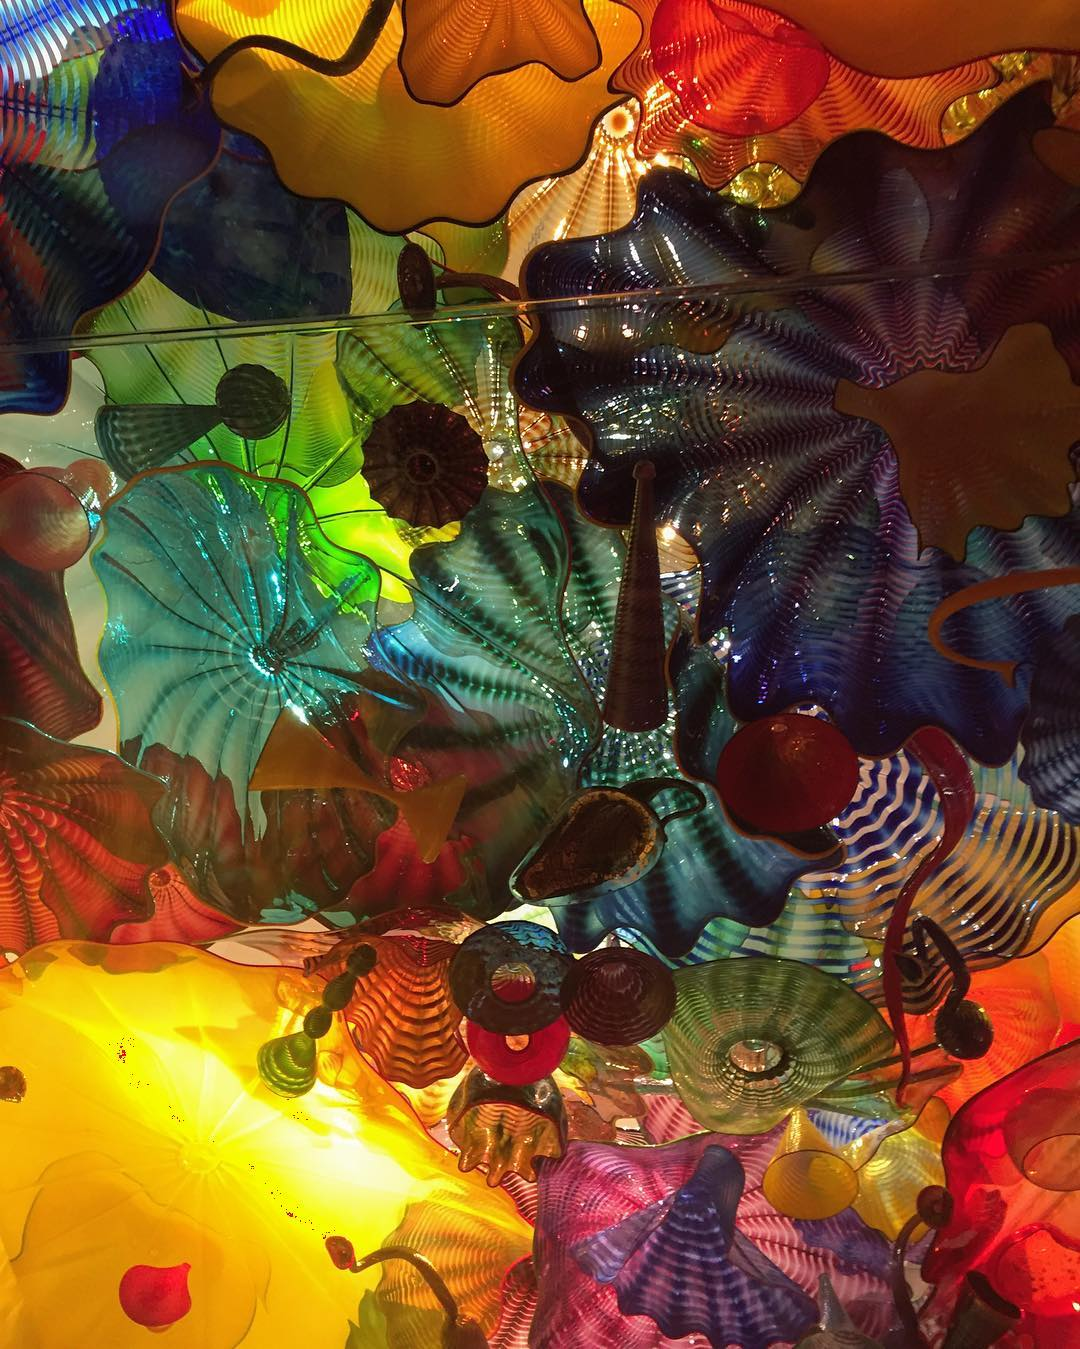 Kaleidoscope #chihuly #playingtourist #Seattle #pnw #pnwlife